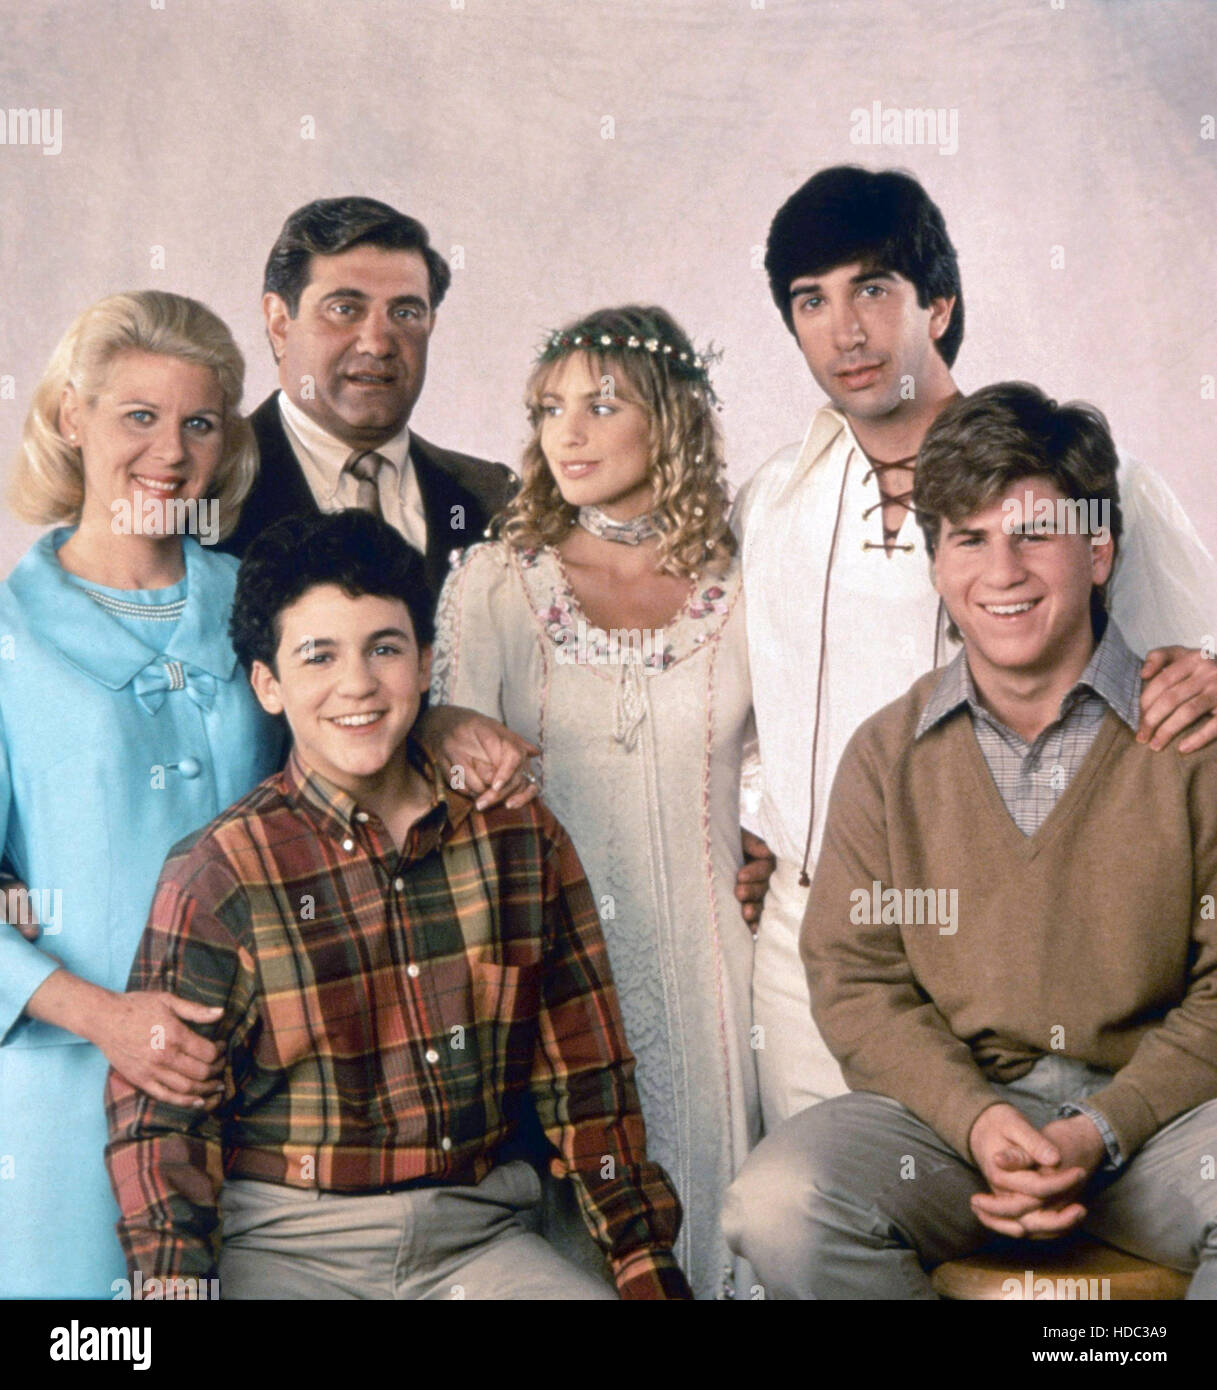 THE WONDER YEARS, from left: Ally Mills, Dan Lauria (rear), Fred Savage, Olivia d'Abo, David Schwimmer, Jason Hervey, Stock Photo